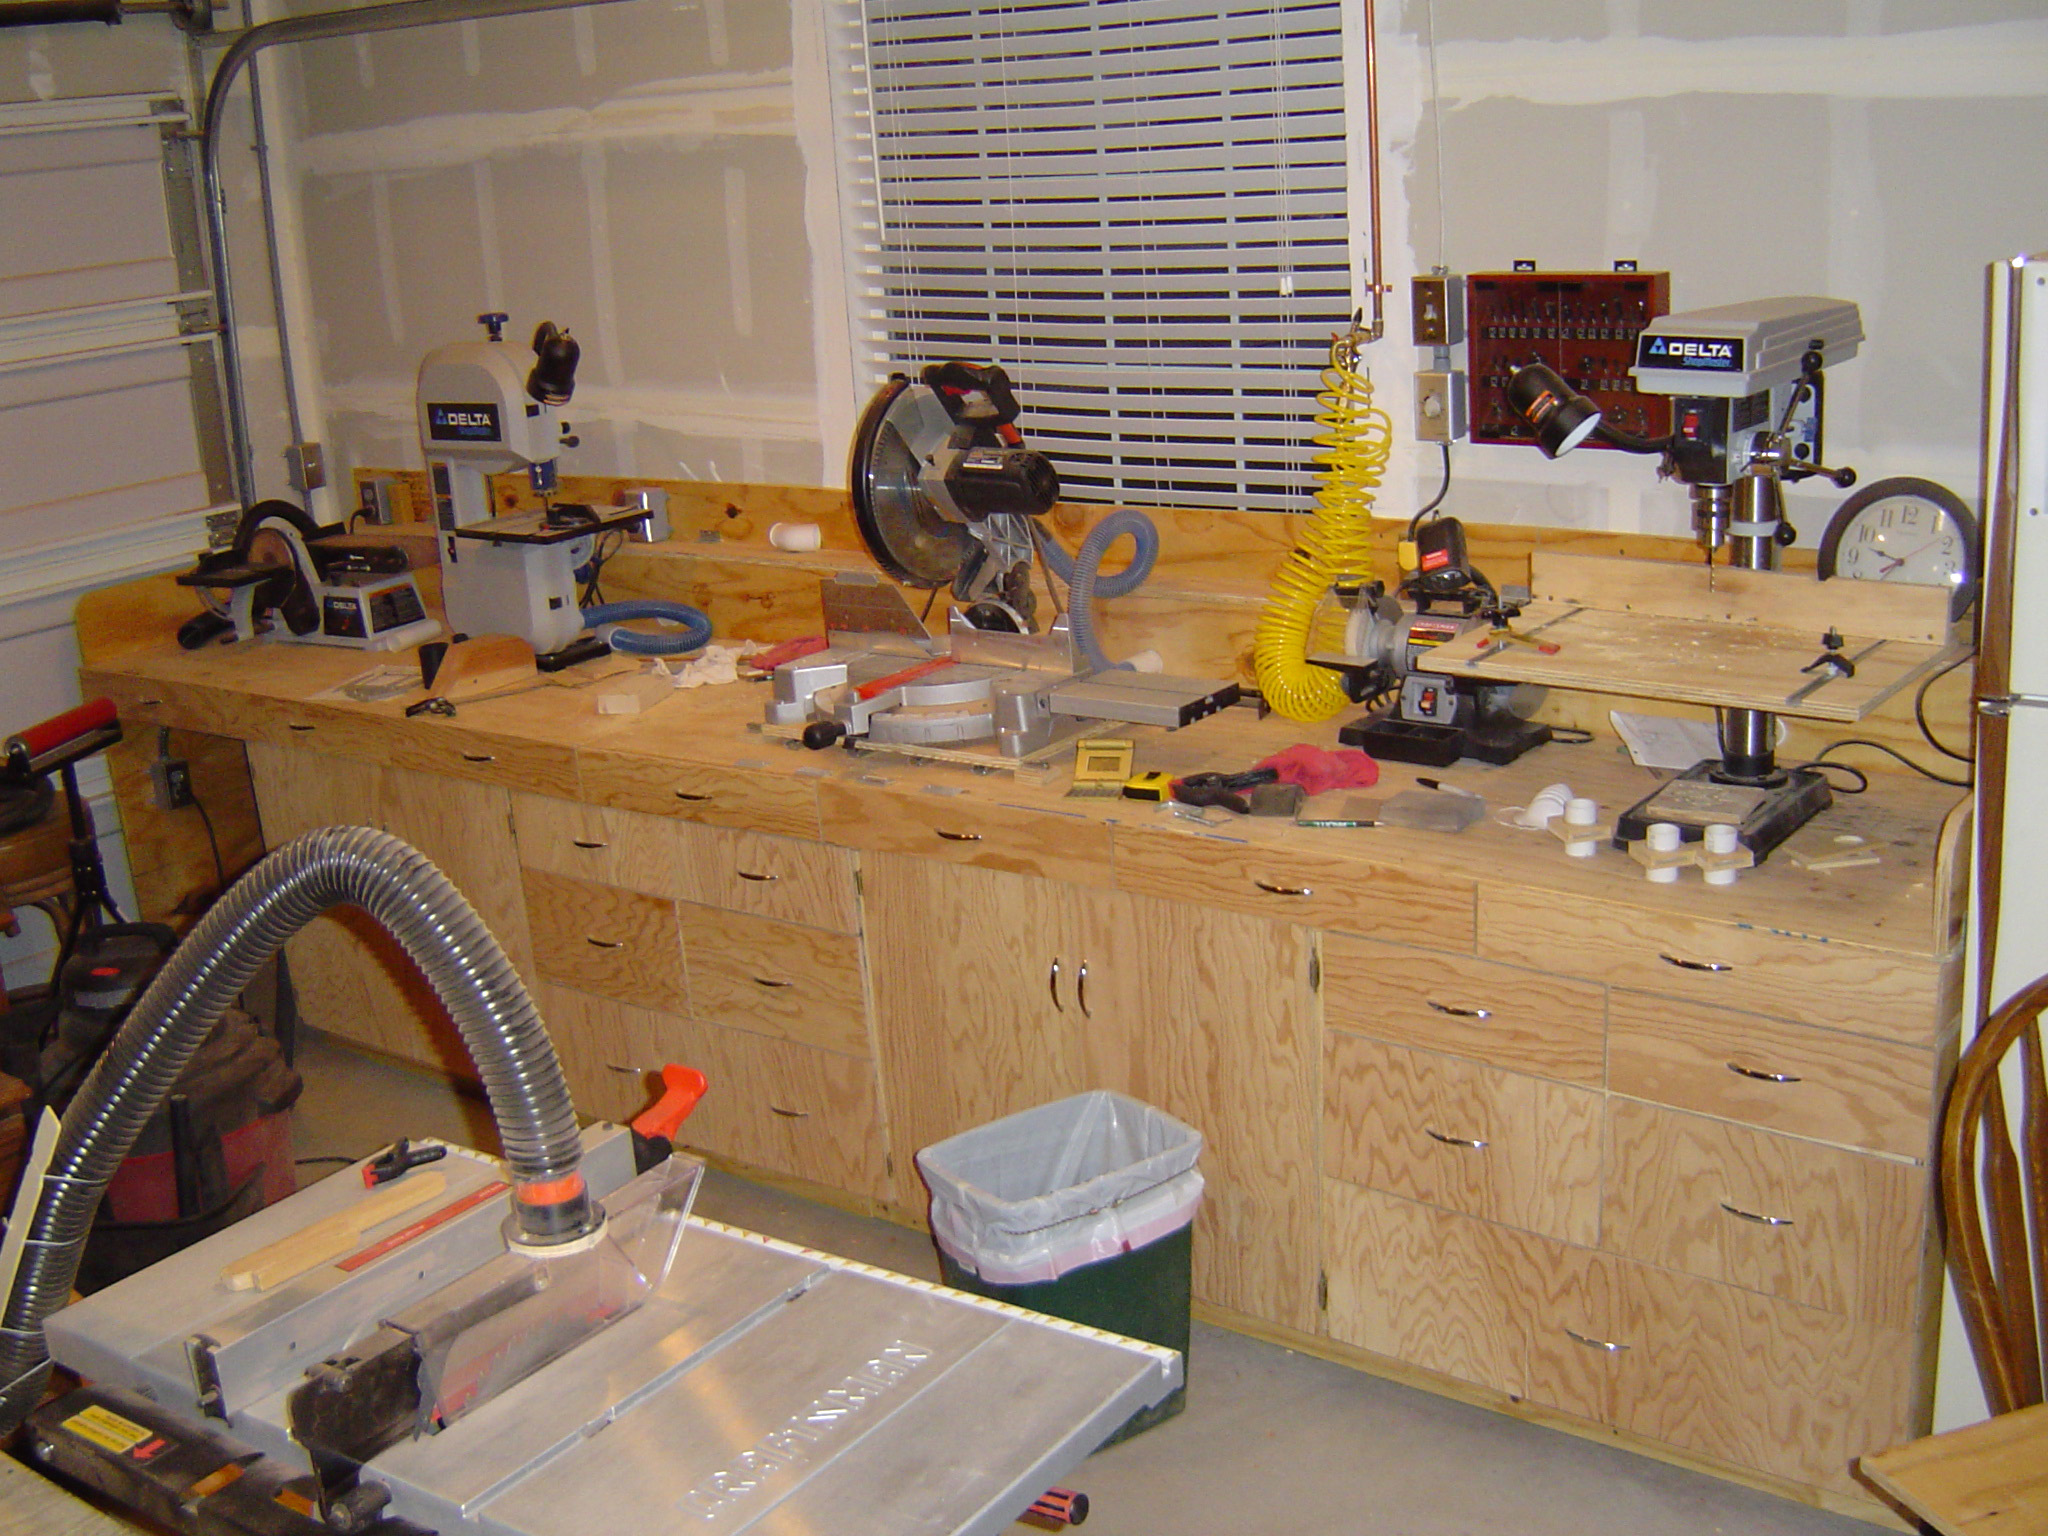 Build Wood Garage Cabinet Plans DIY PDF coat bench plans ...